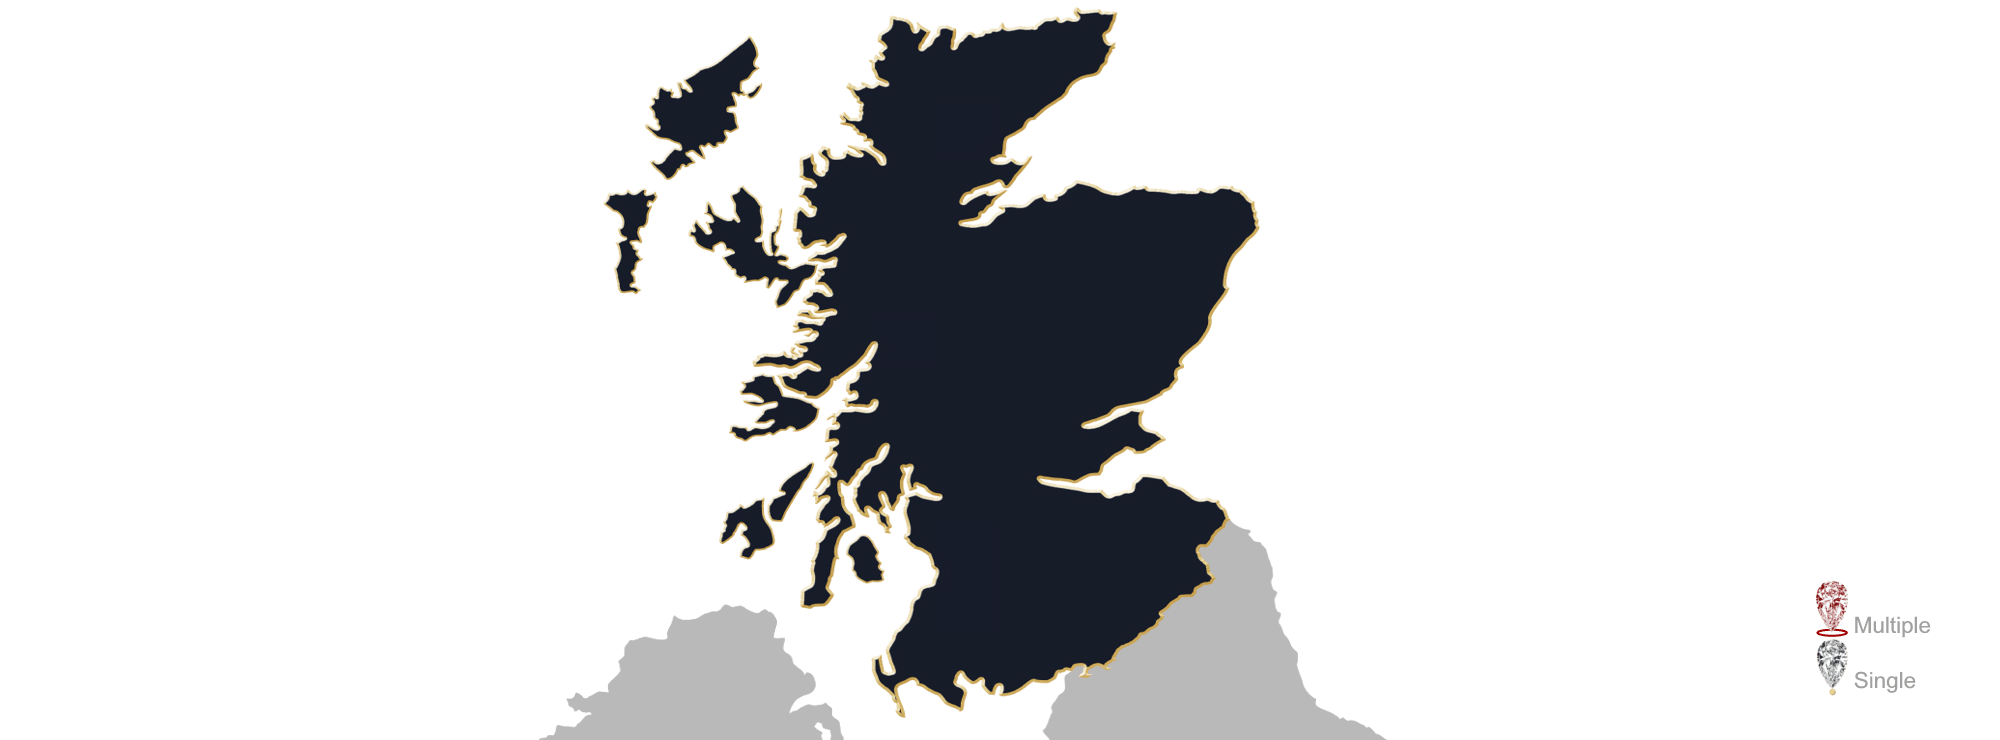 Map showing the location of Jewellery Valuers in Scotland